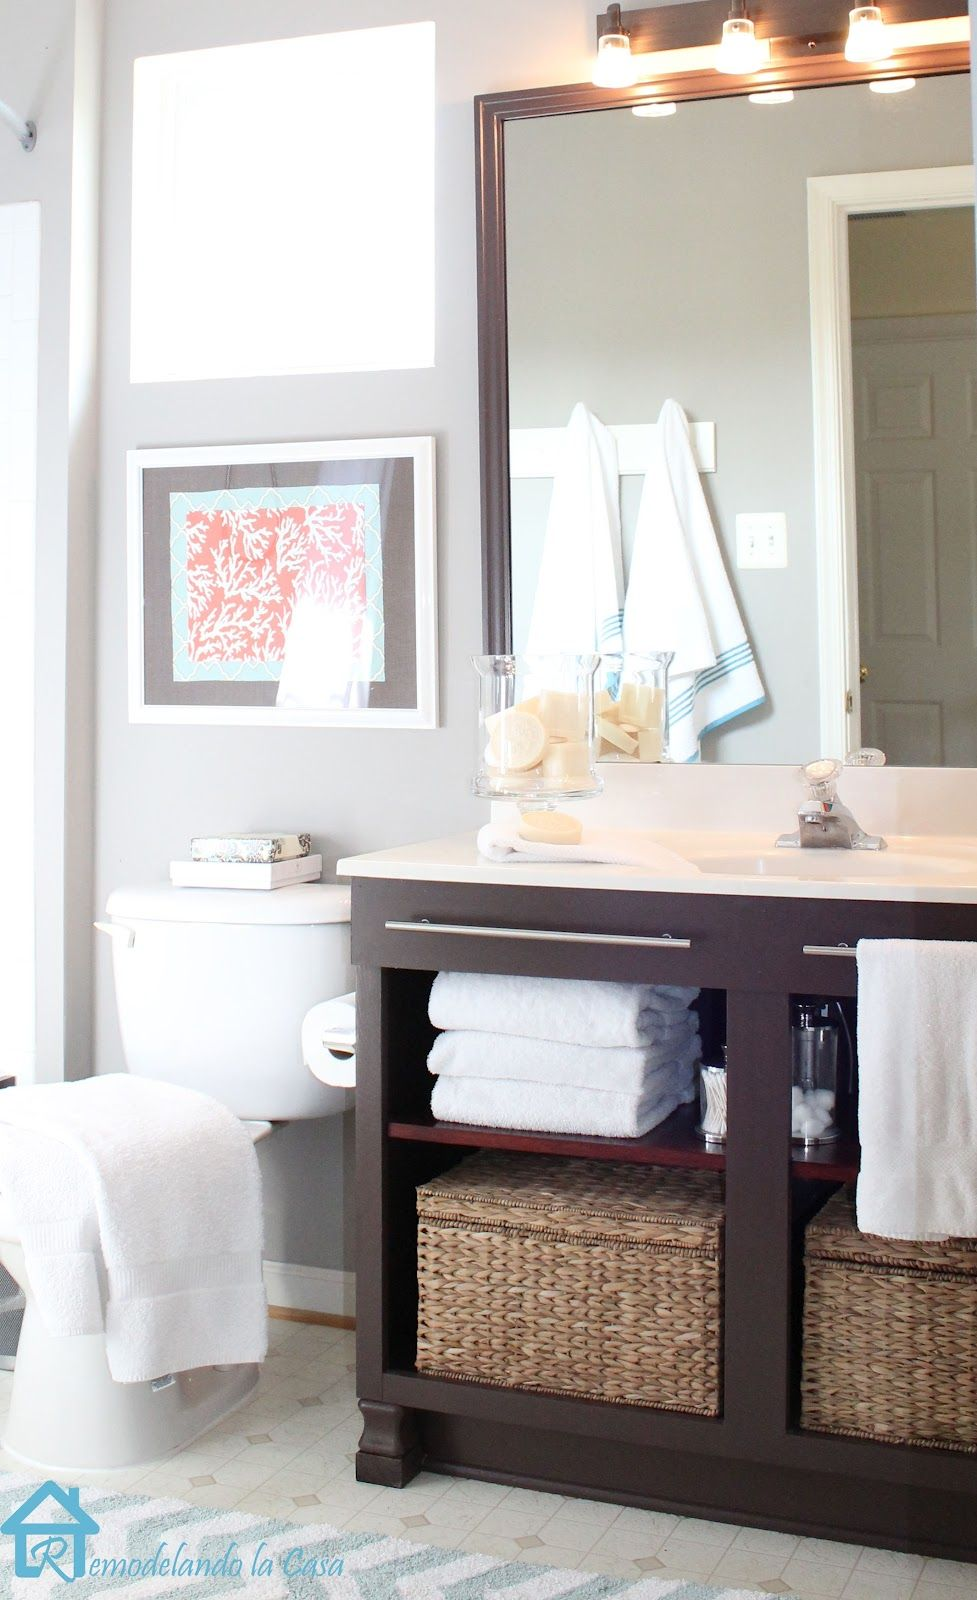 Builder\'s Grade Vanity Revamp! | Vanities, Bathroom vanities and Shelves